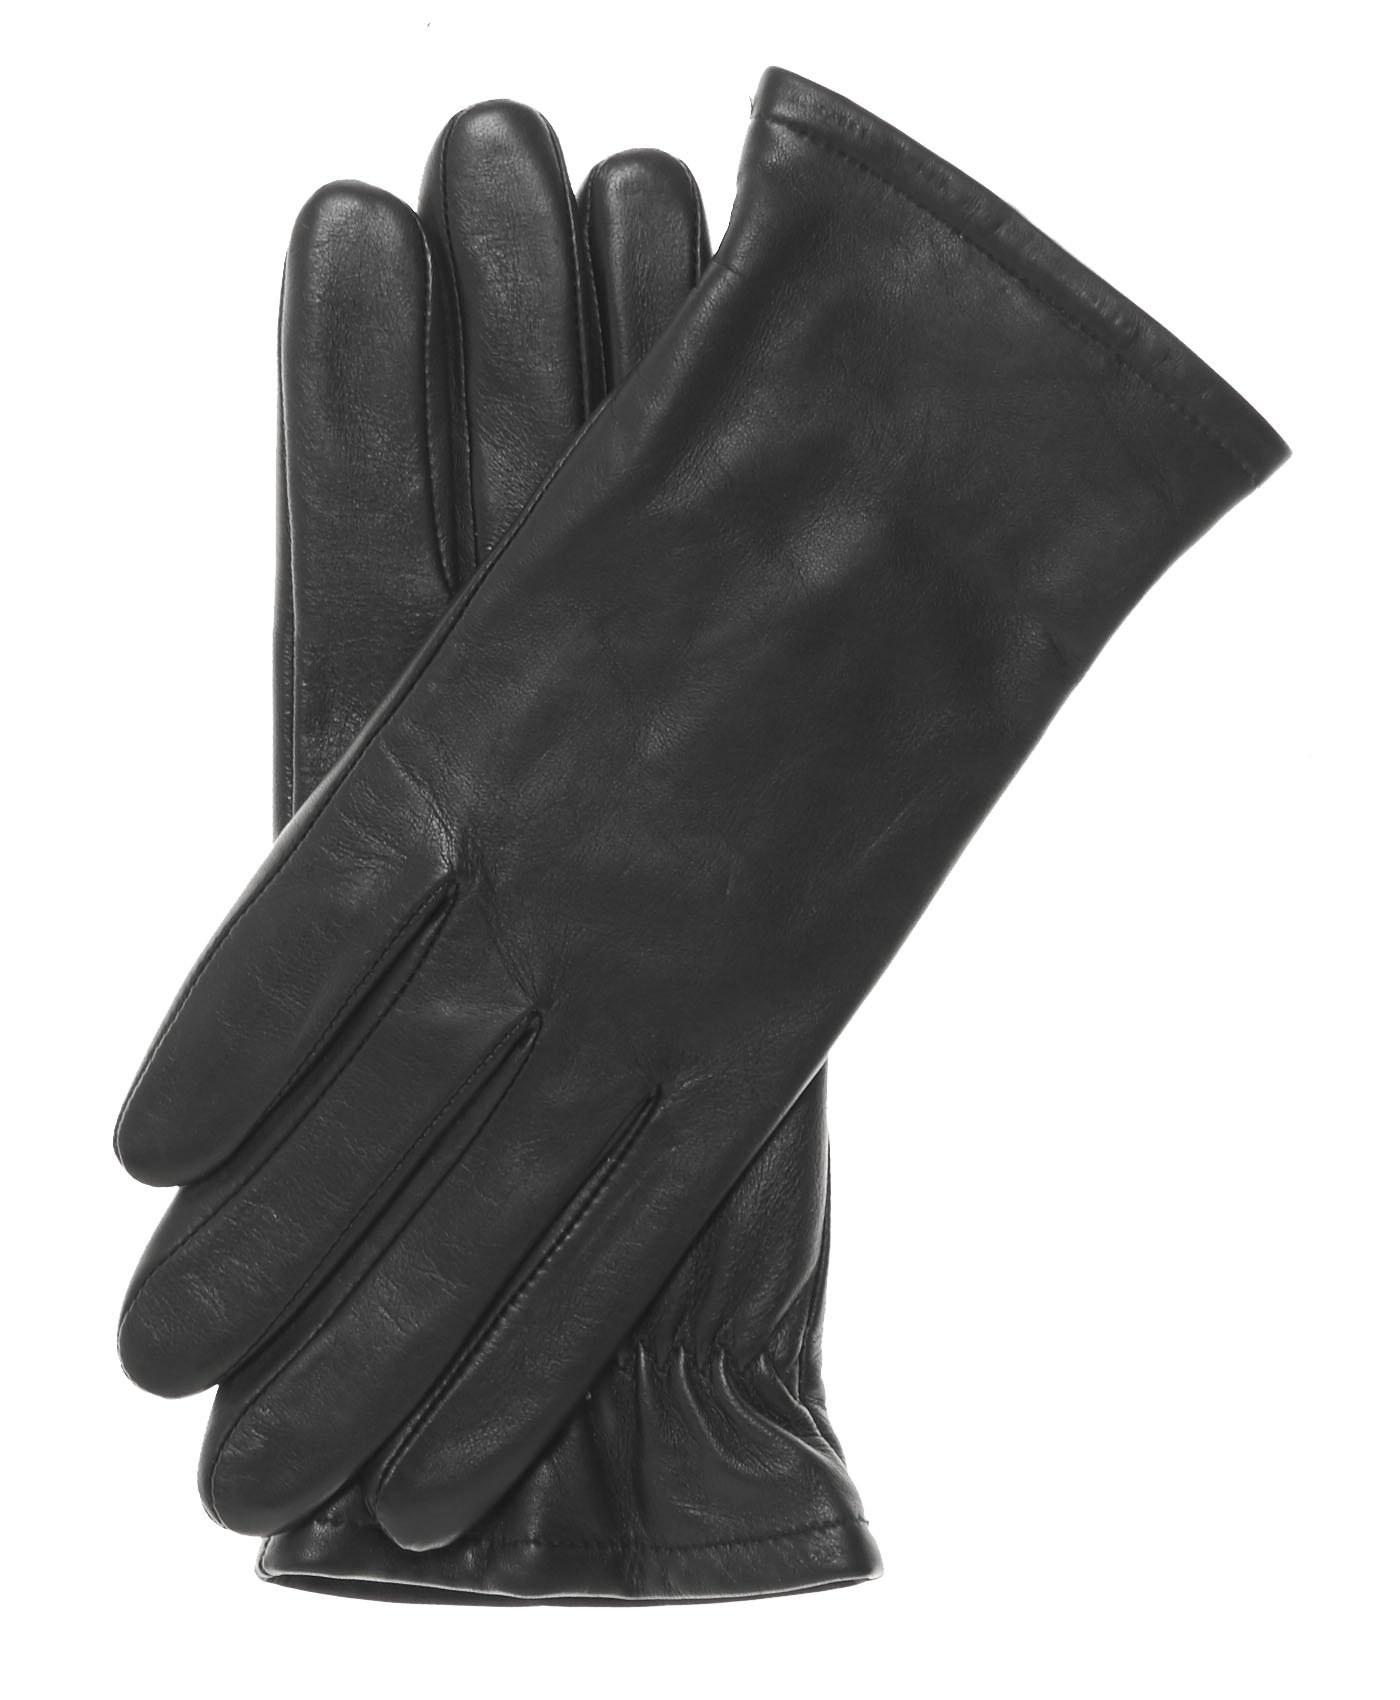 Pratt and Hart Women's Classic Thinsulate Lined Leather Gloves Size 8 1/2 Color Black